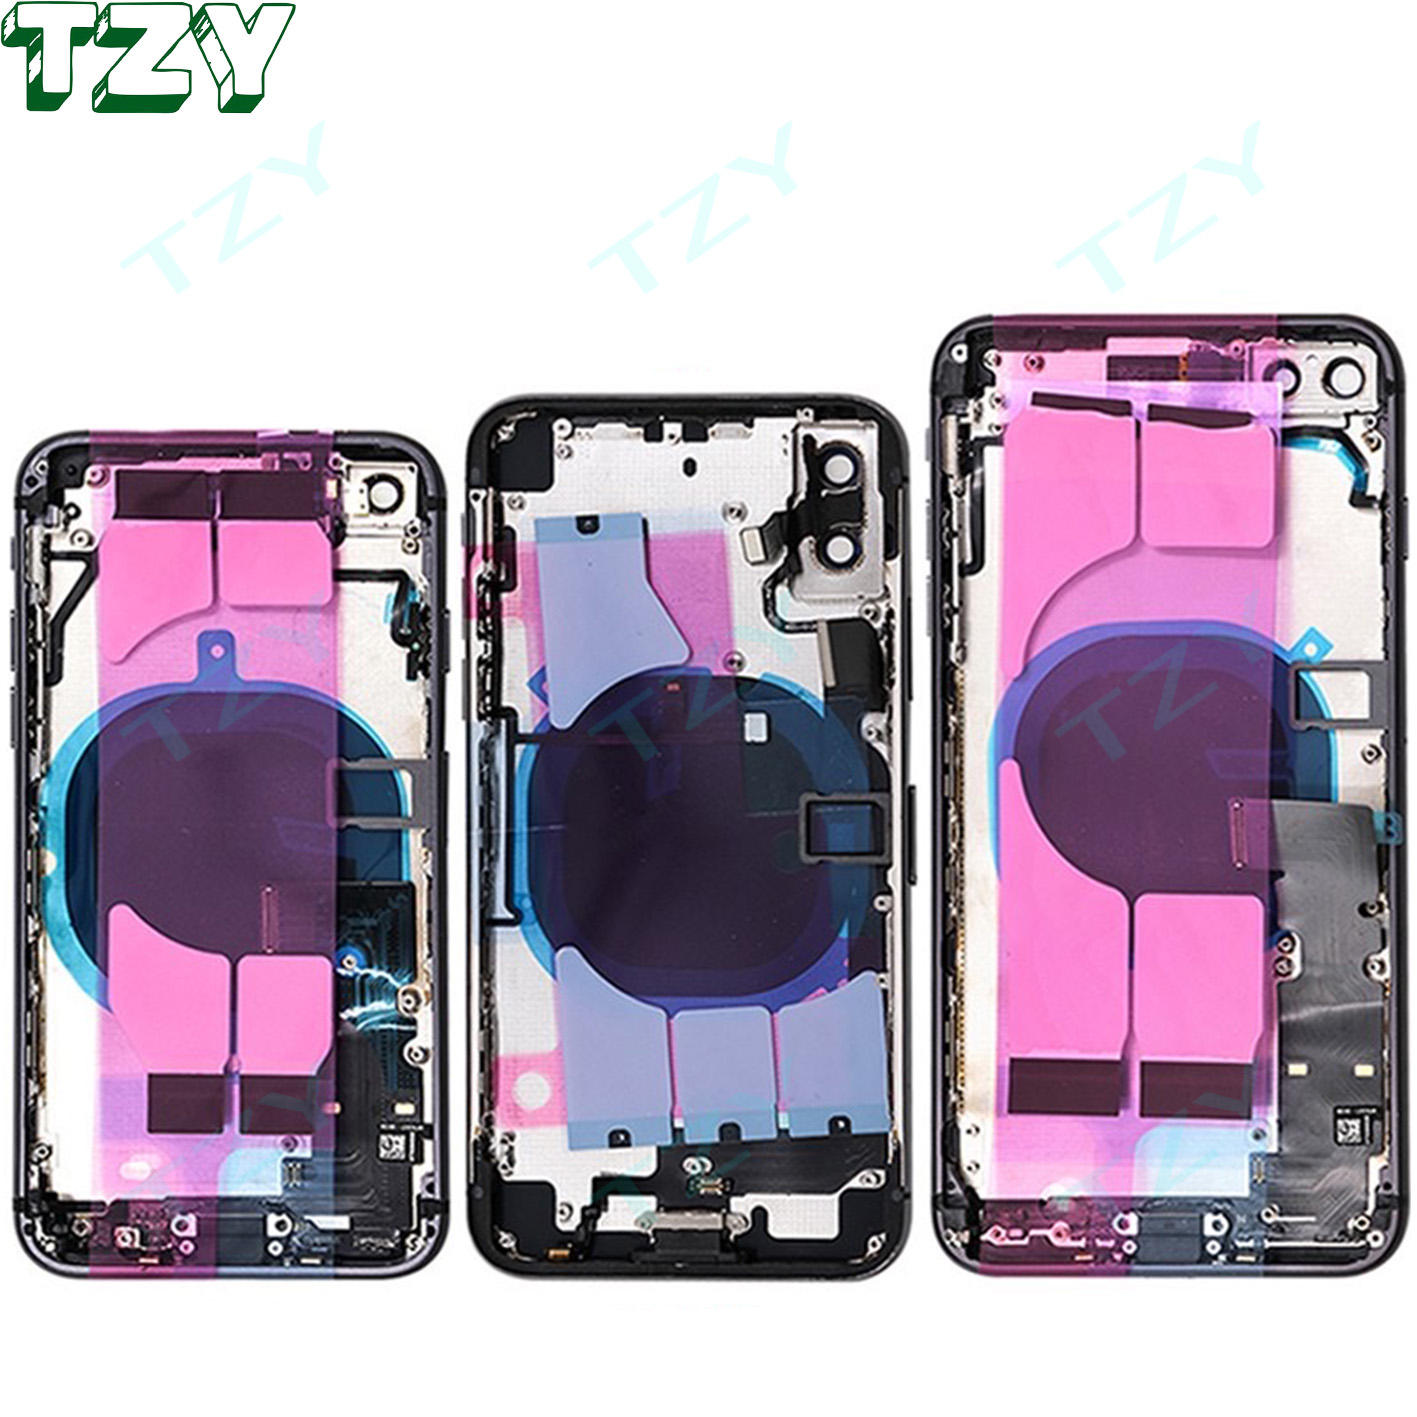 Full Battery cover Housing For Apple iphone 7G 7PLUS 8G 8PLUS X XR XS XSMAX Back cover With Flex Cable Middle Frame Chassis